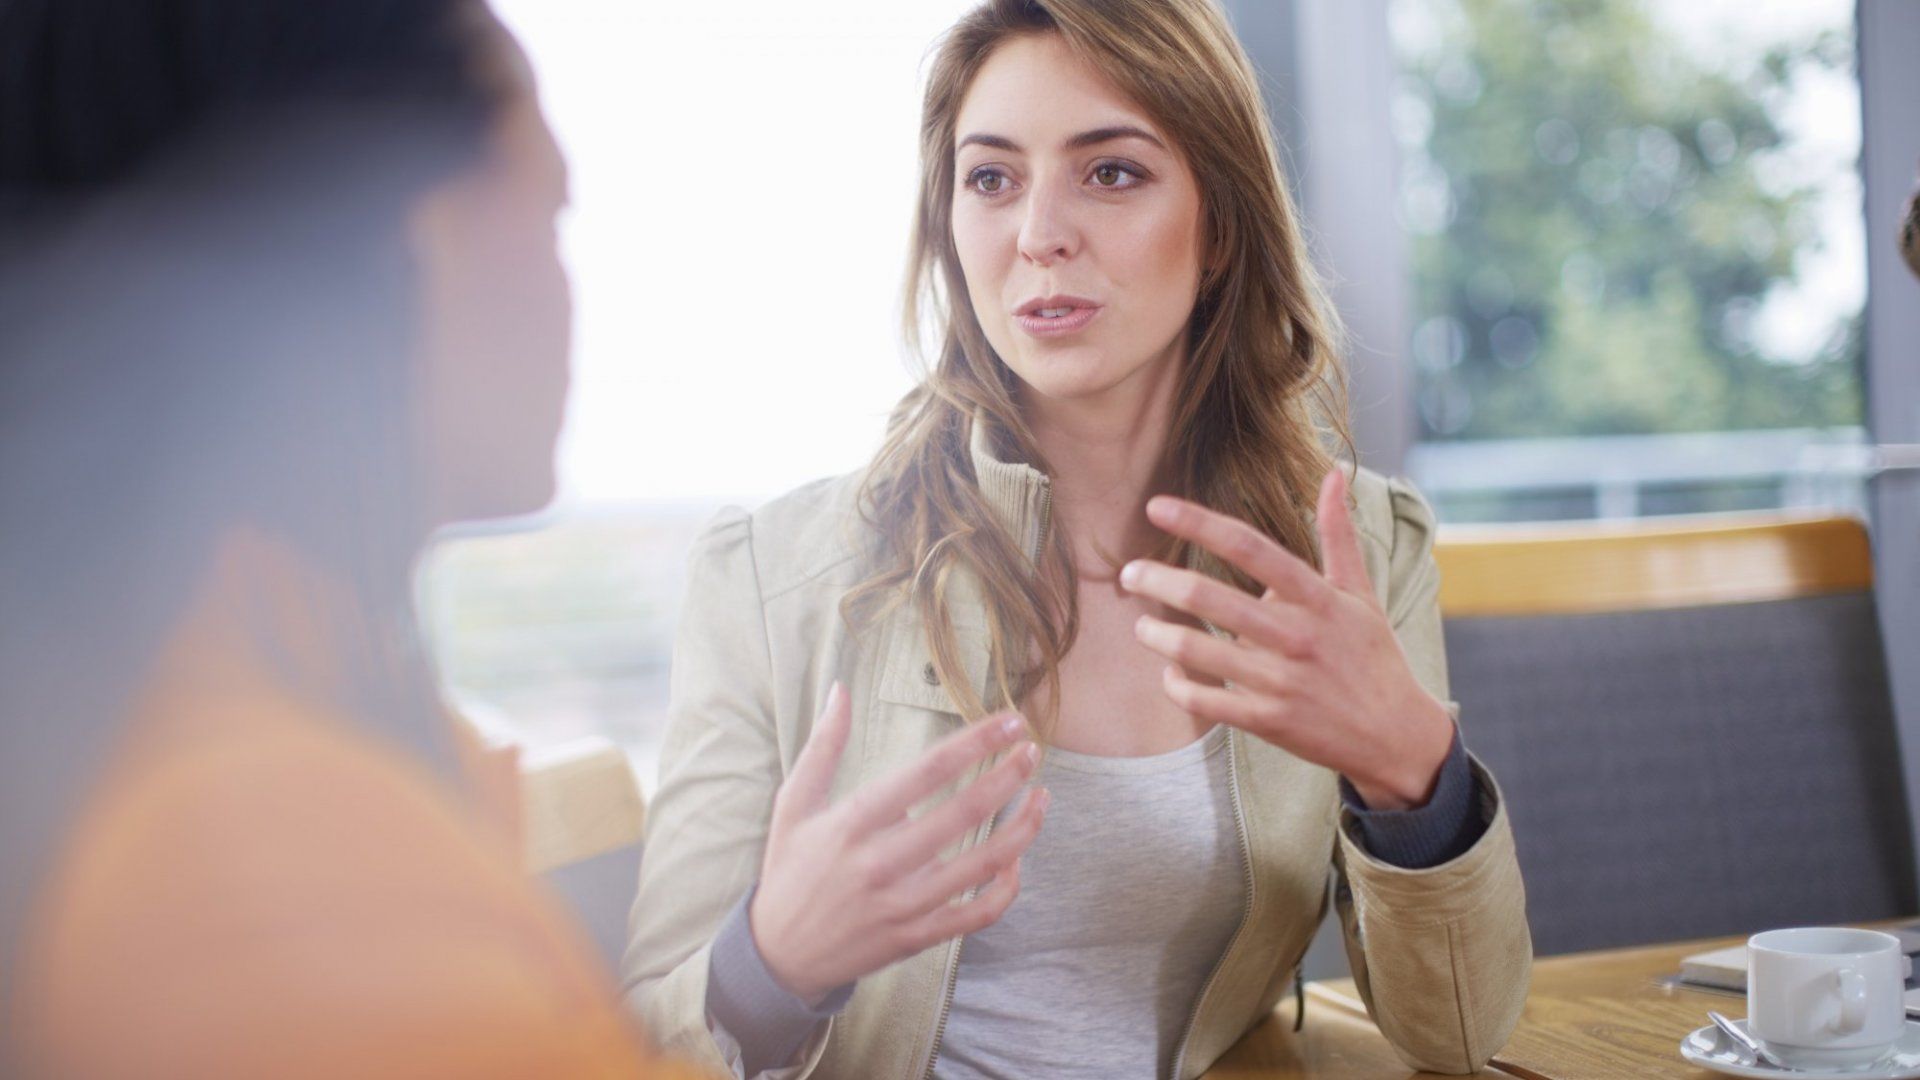 5 Ways to Dramatically Improve Your Communication (Without Saying a Word)